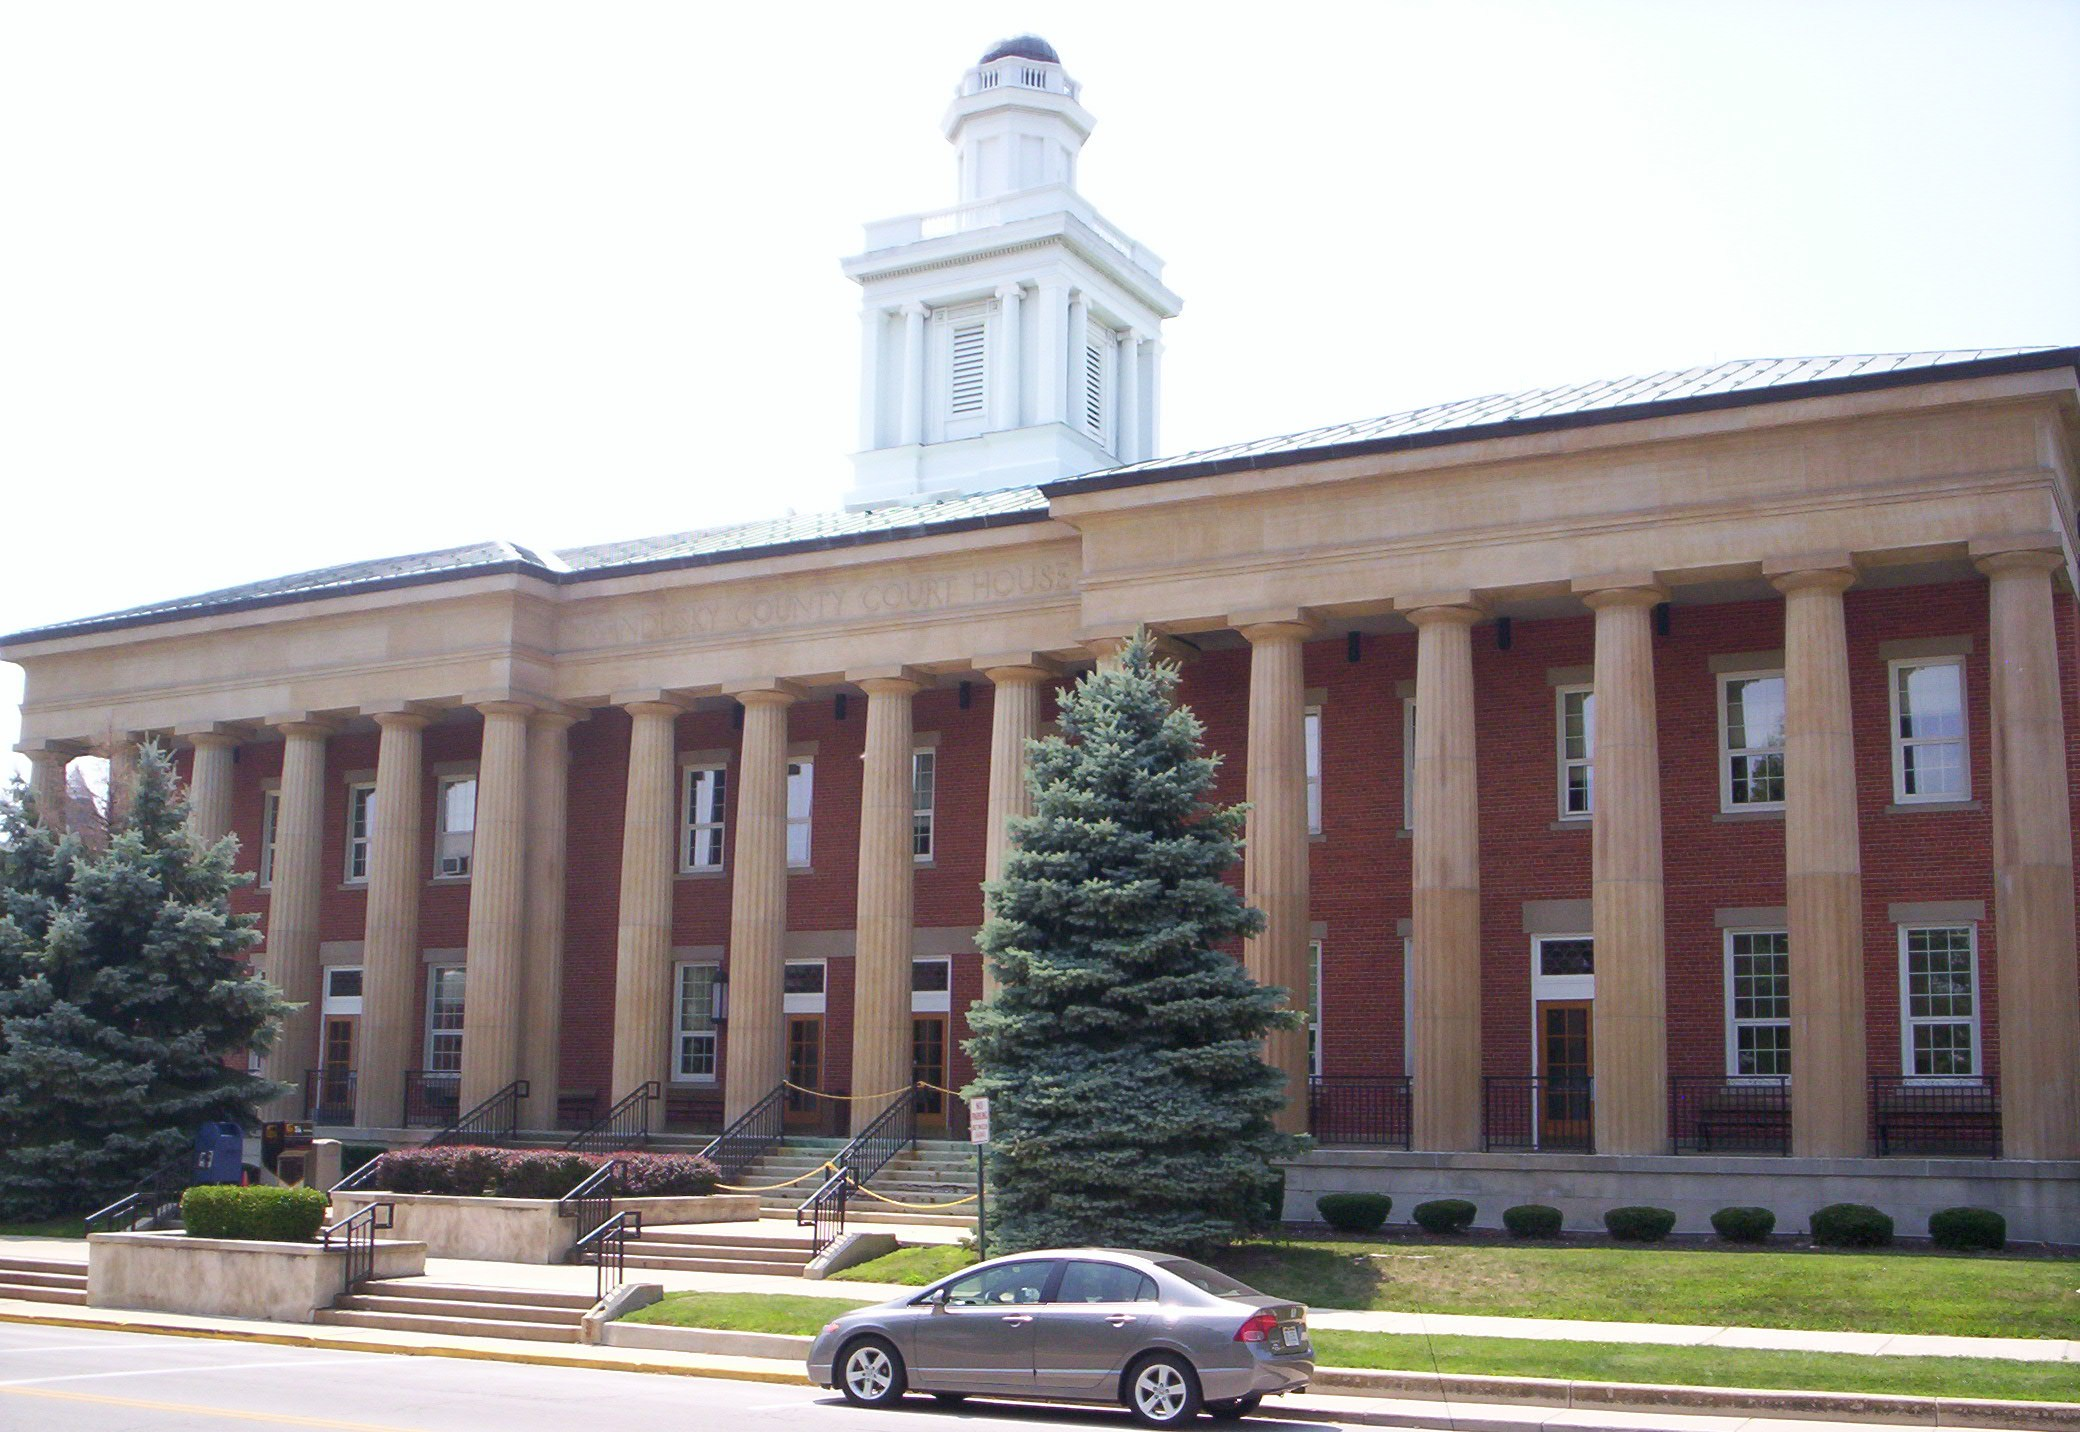 Sandusky County Courthouse in Fremont.